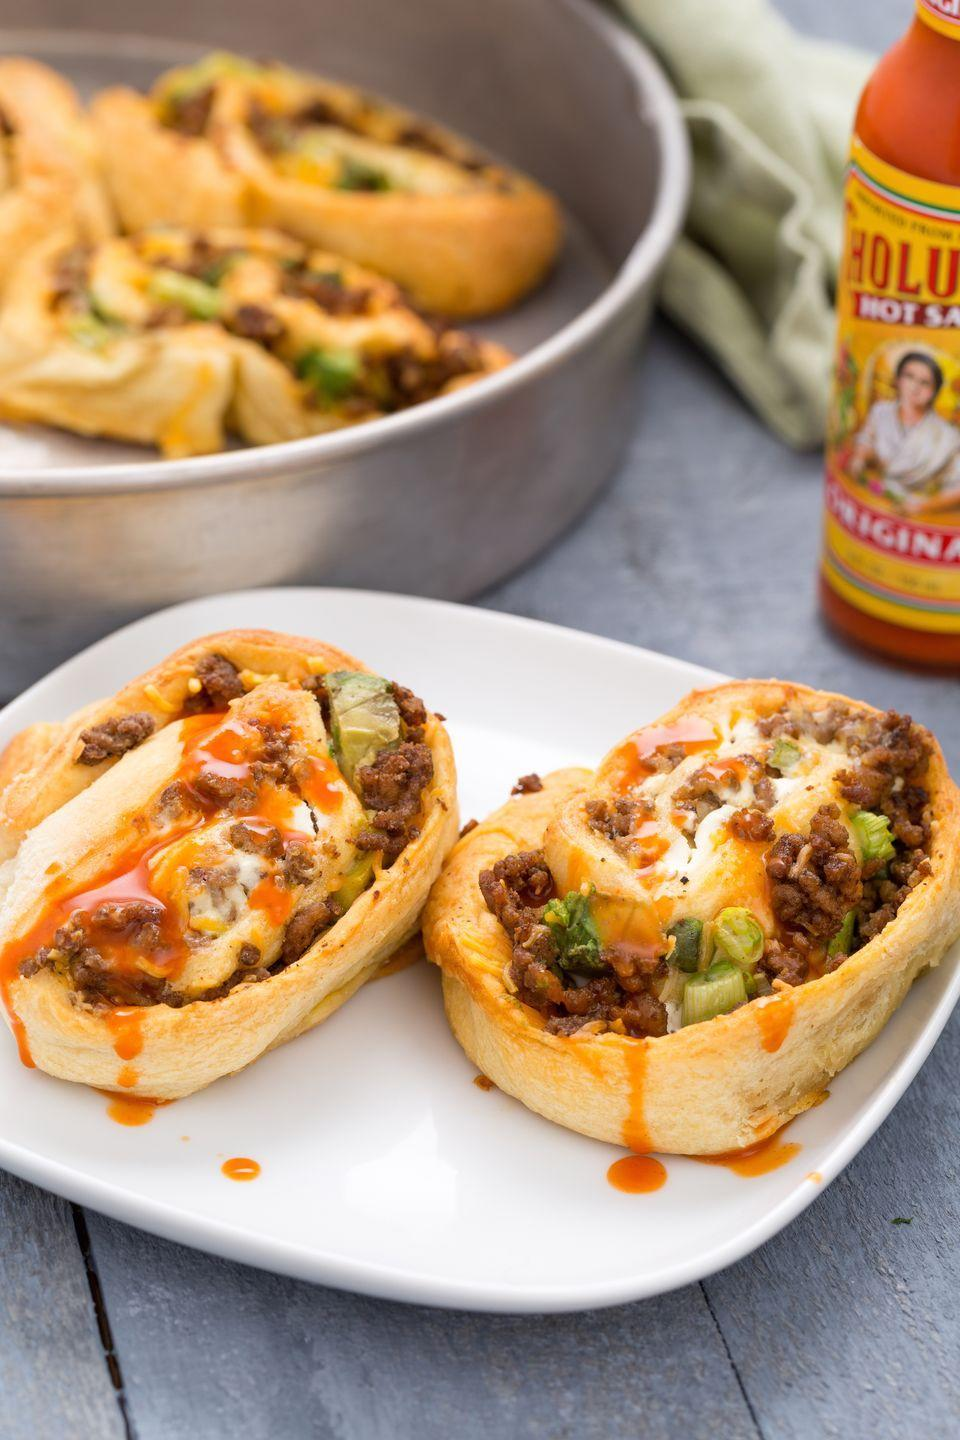 """<p>Anything tortillas can do, crescent rolls can do better.</p><p>Get the recipe from <a href=""""https://www.delish.com/cooking/recipe-ideas/recipes/a44344/beef-taco-roll-ups-recipe/"""" rel=""""nofollow noopener"""" target=""""_blank"""" data-ylk=""""slk:Delish"""" class=""""link rapid-noclick-resp"""">Delish</a>.</p>"""